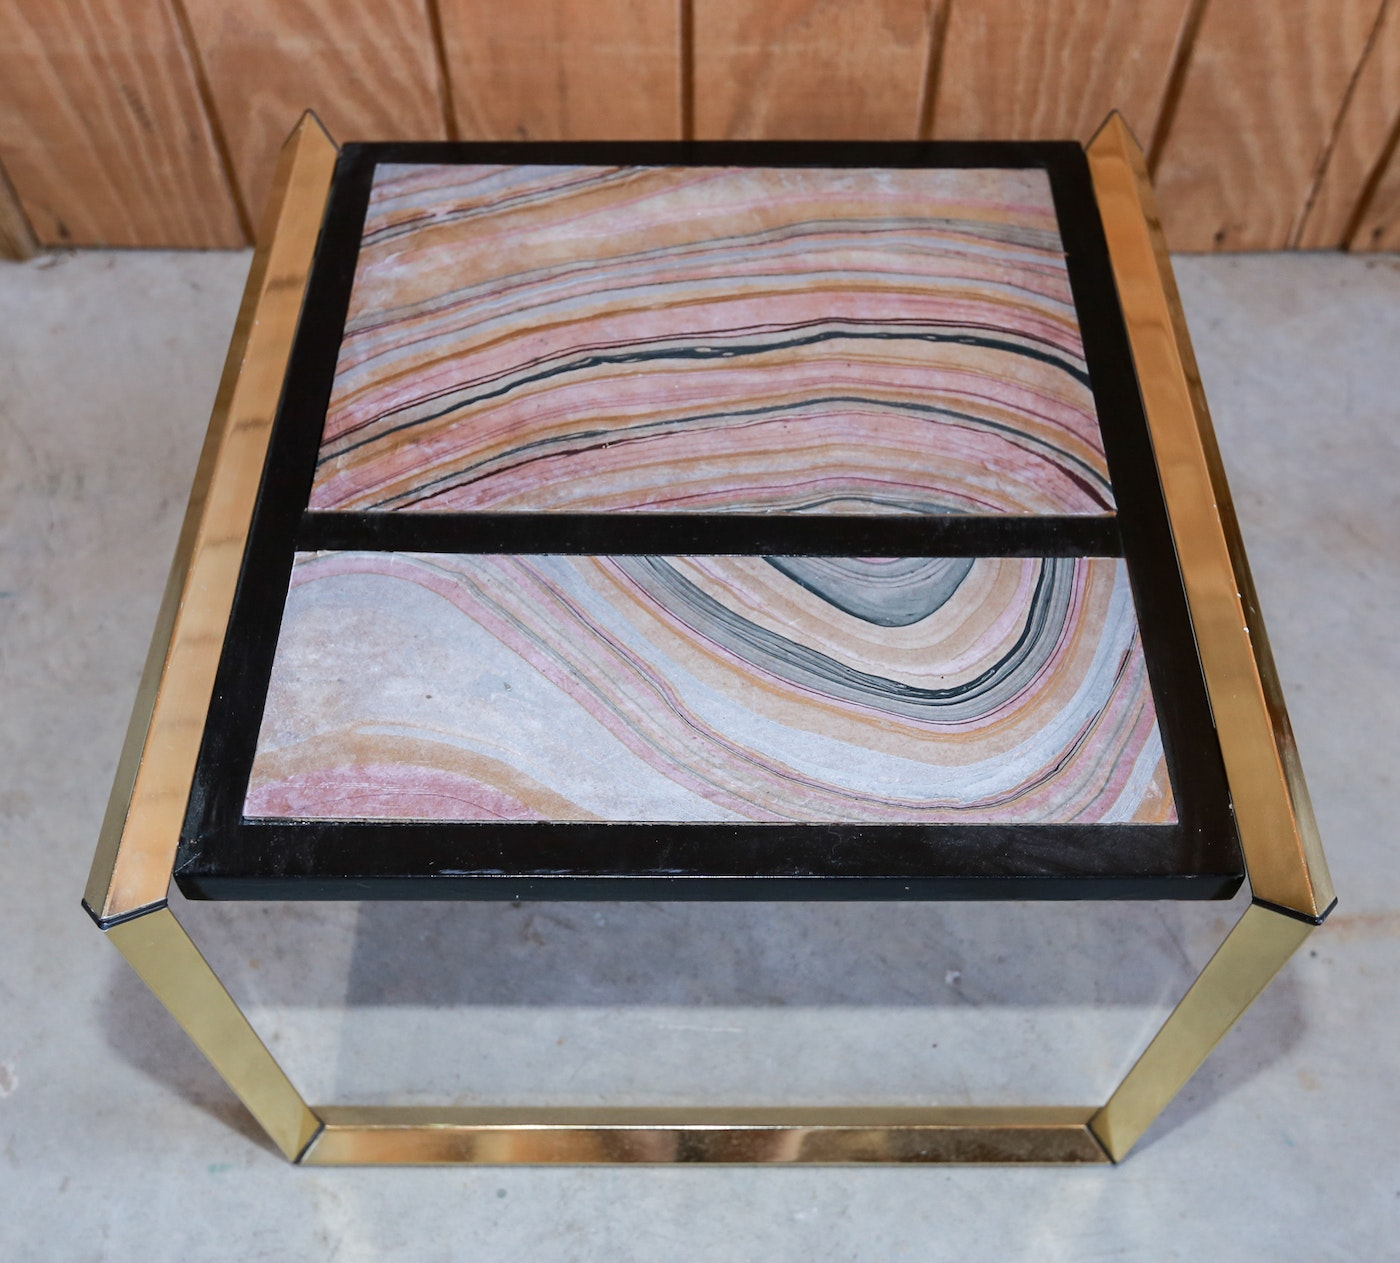 Geode end table by lane furniture ebth for Nfpa 99 table 5 1 11